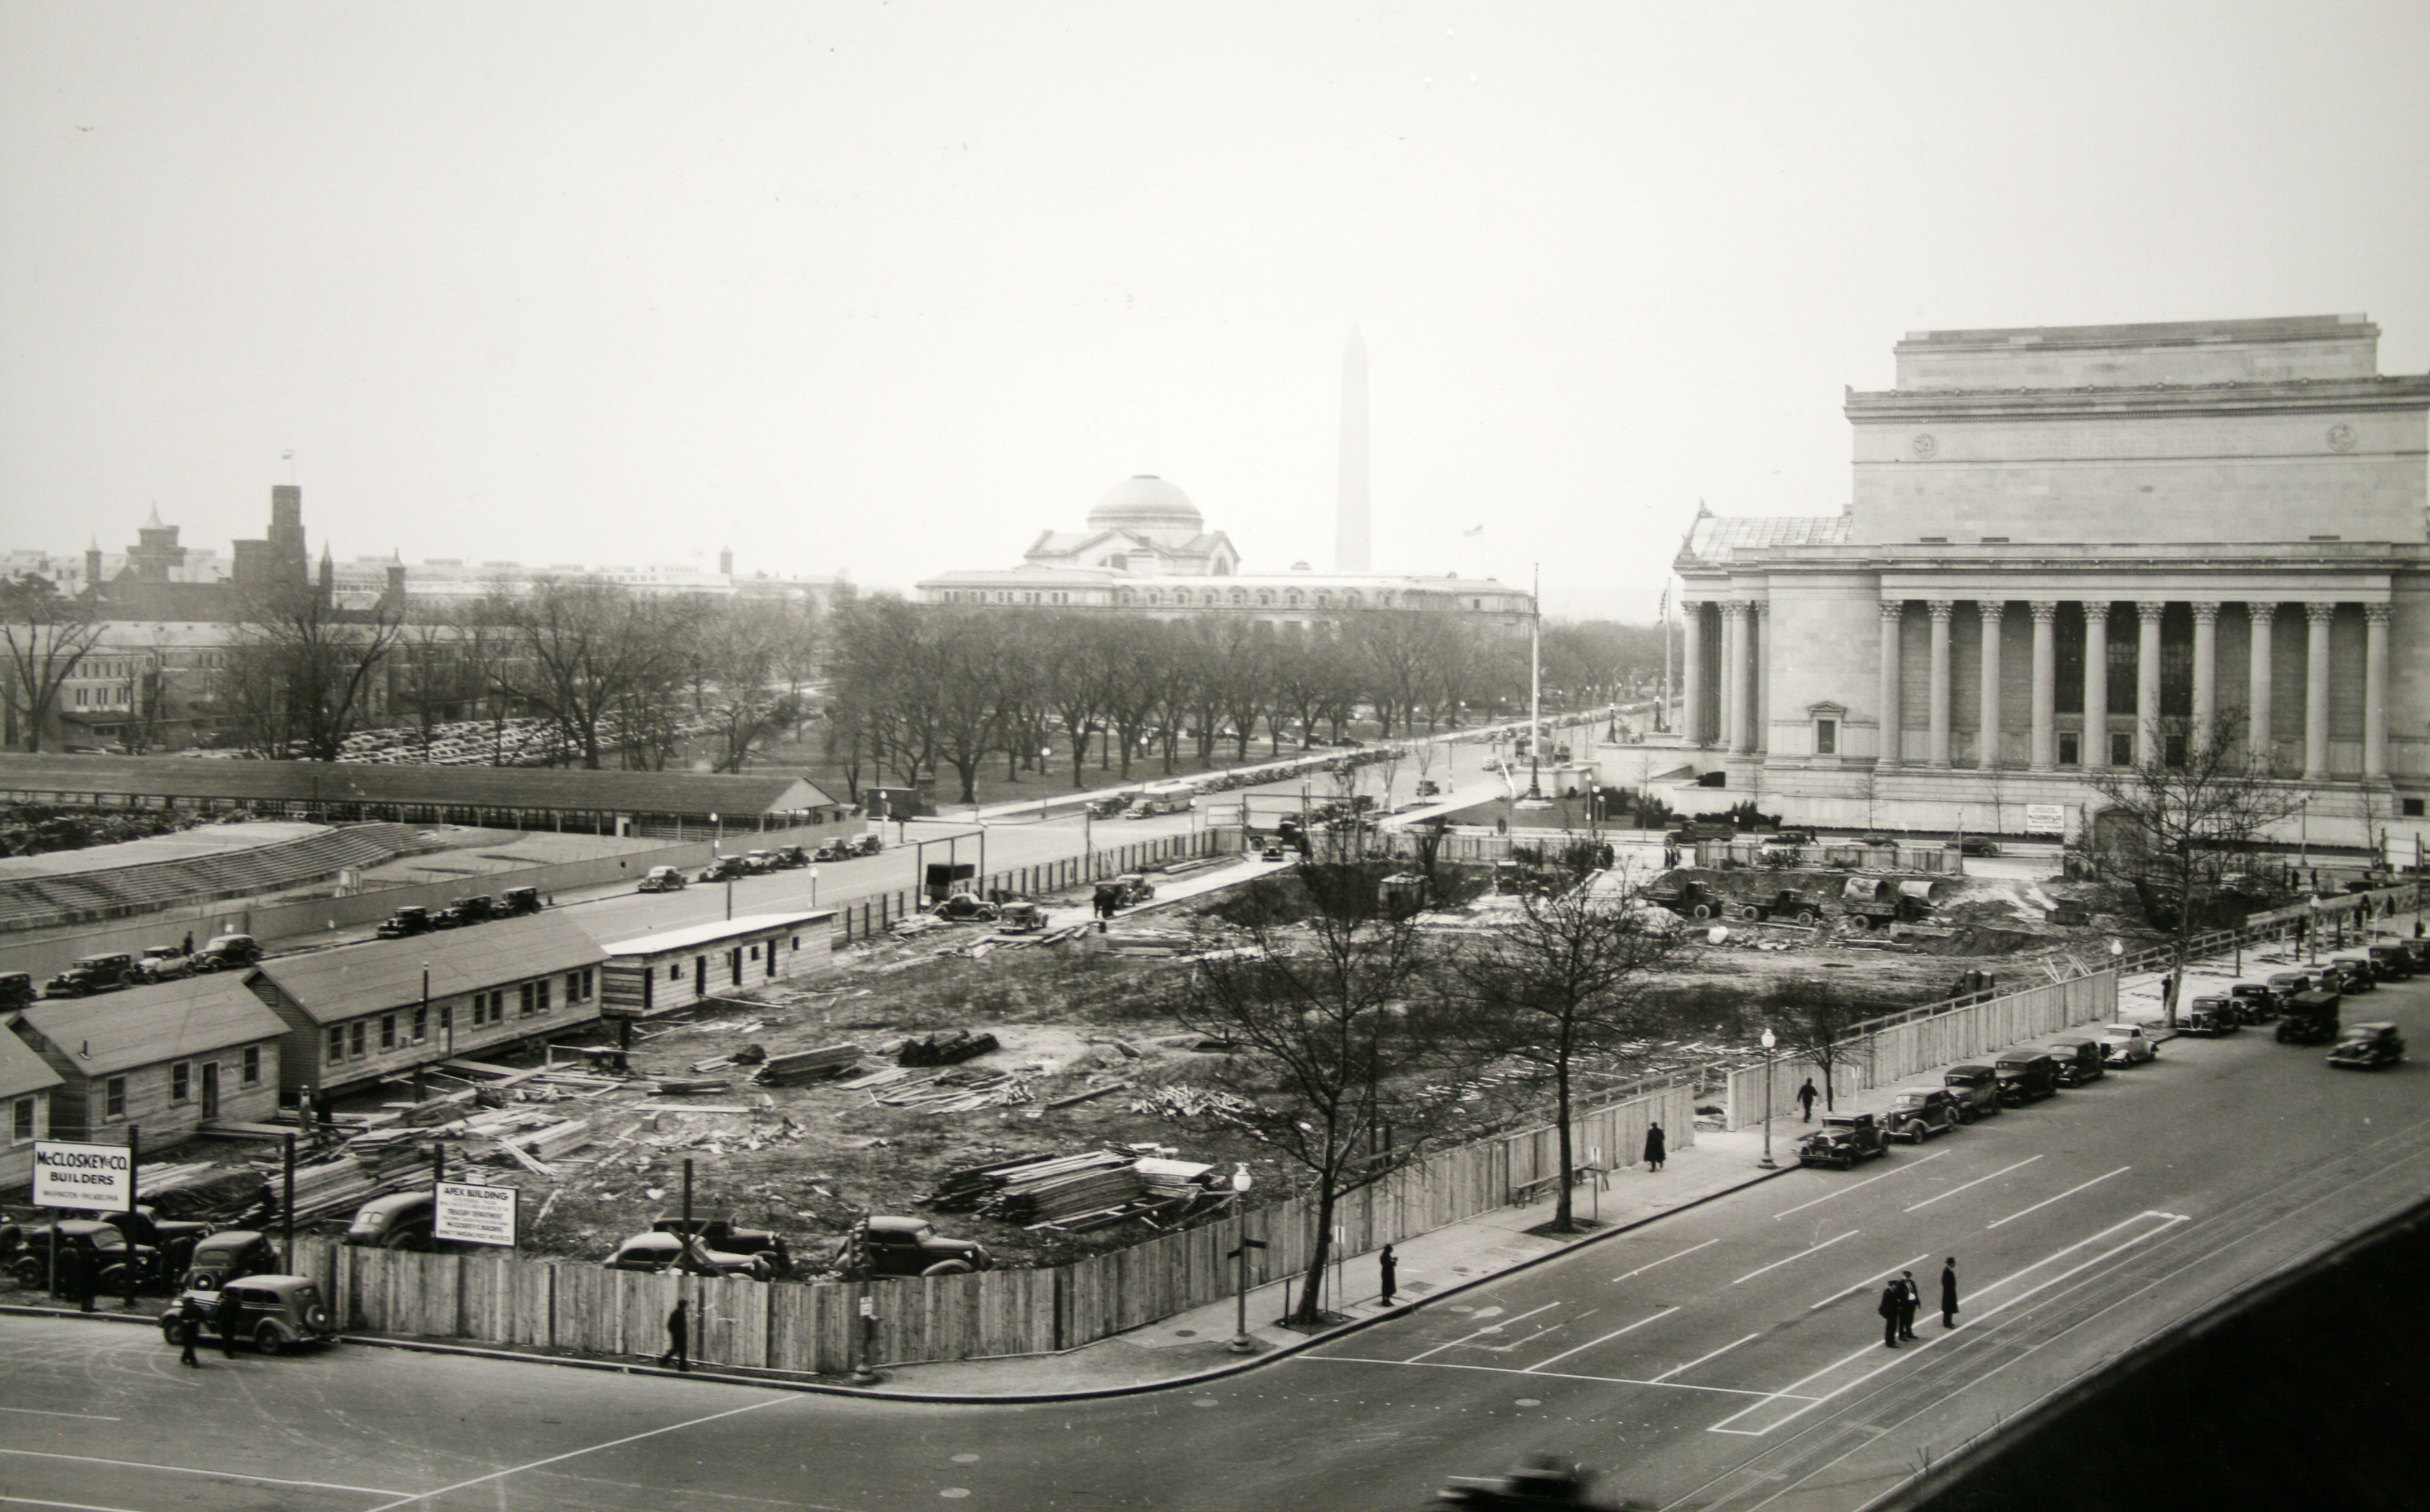 Very early stages of construction on the FTC building. The National Archives is visible behind the site, as well as the Washington Monument and Smithsonian Natural History Museum in the distance.